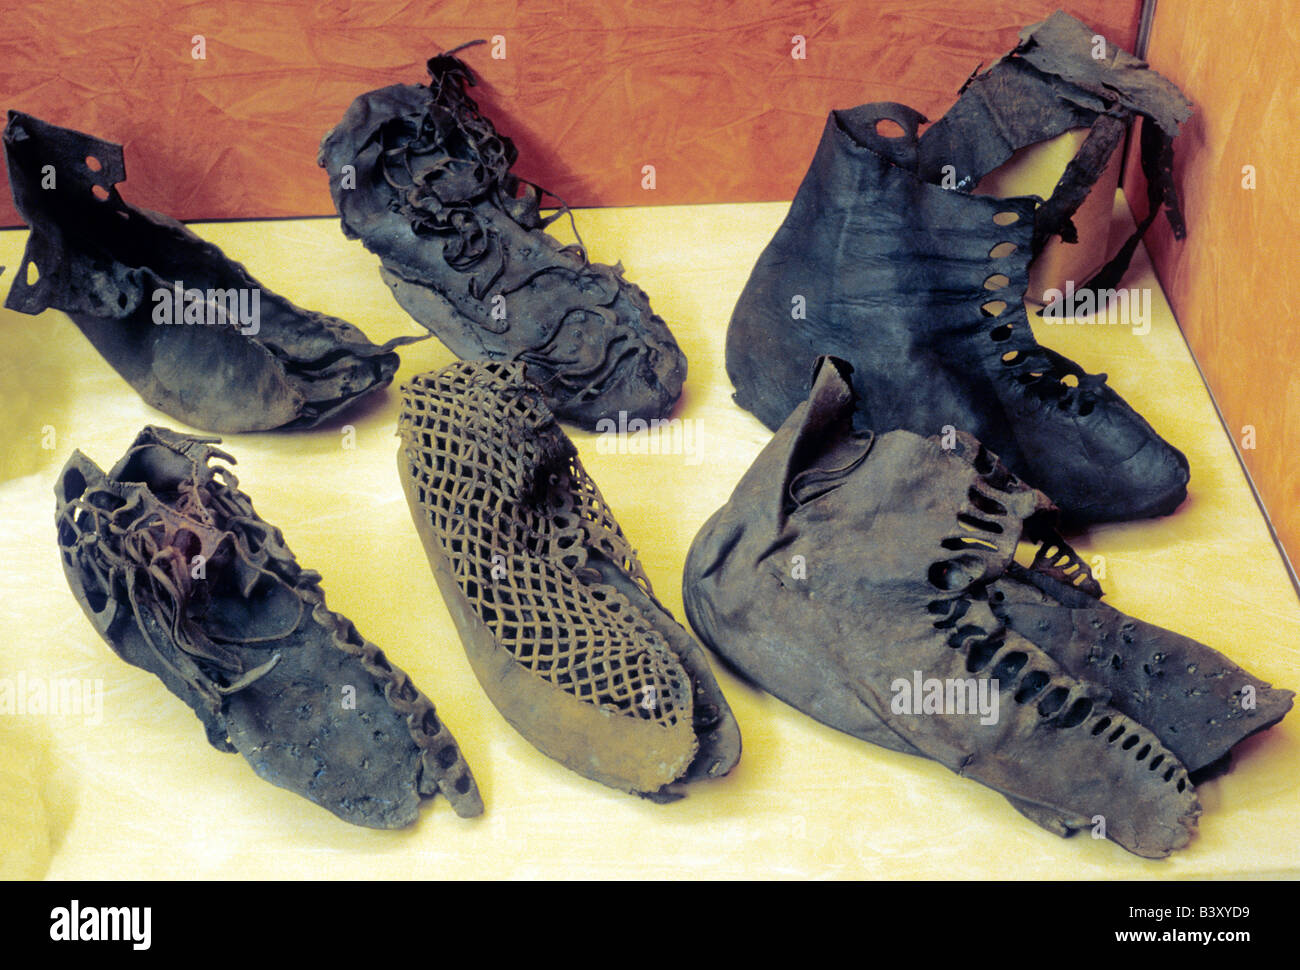 Vindolanda museum display Roman leather footwear shoes archaeology archaeological artifacts finds Northumberland - Stock Image